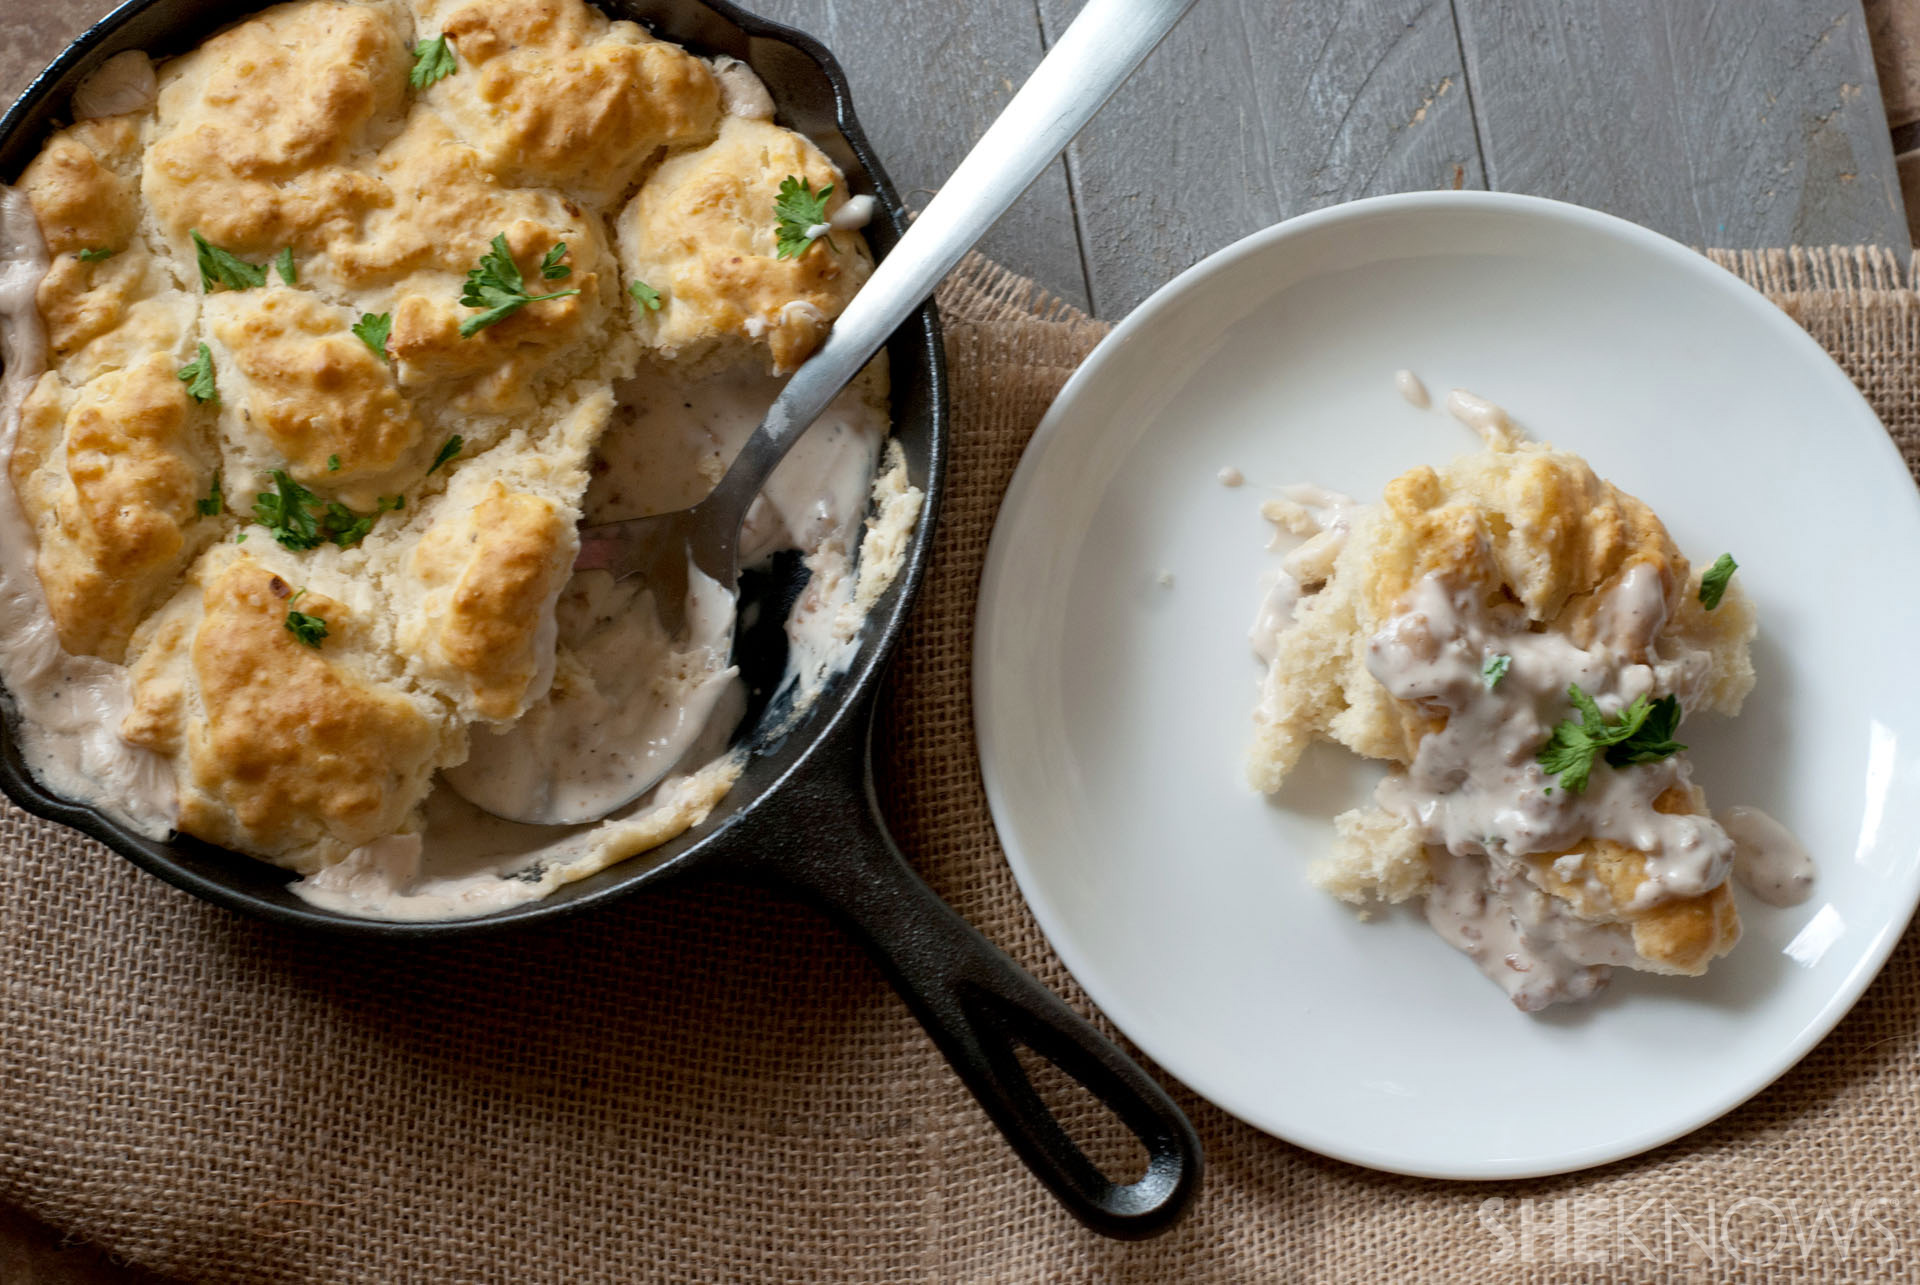 One skillet biscuits and gravy recipe